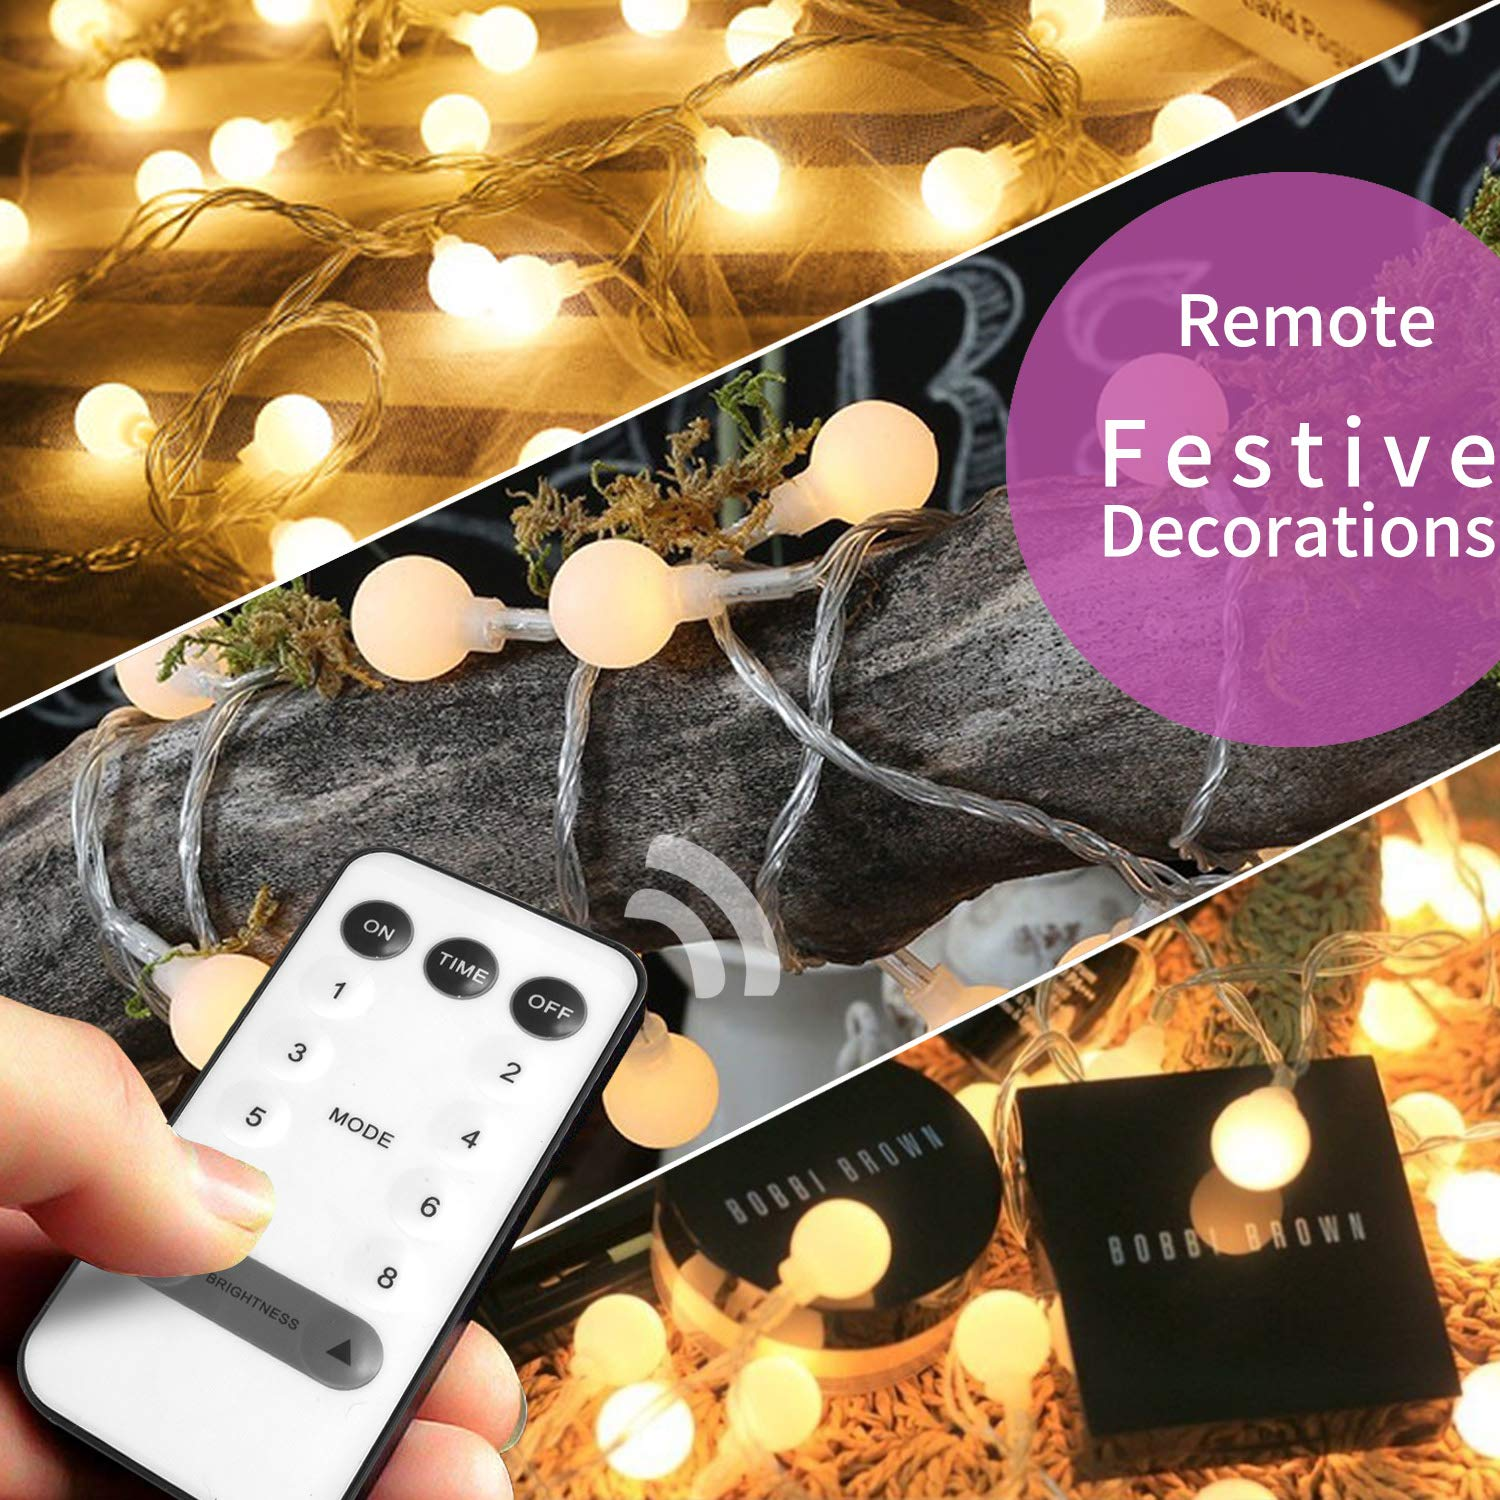 owlguart Globe String Lights Fairy Decorative Light for Outdoor, Indoor, Home,Wedding,Christmas Tree, Party (Warm White, Battery-Powered, USB-Powered,50 LED 16 Ft)